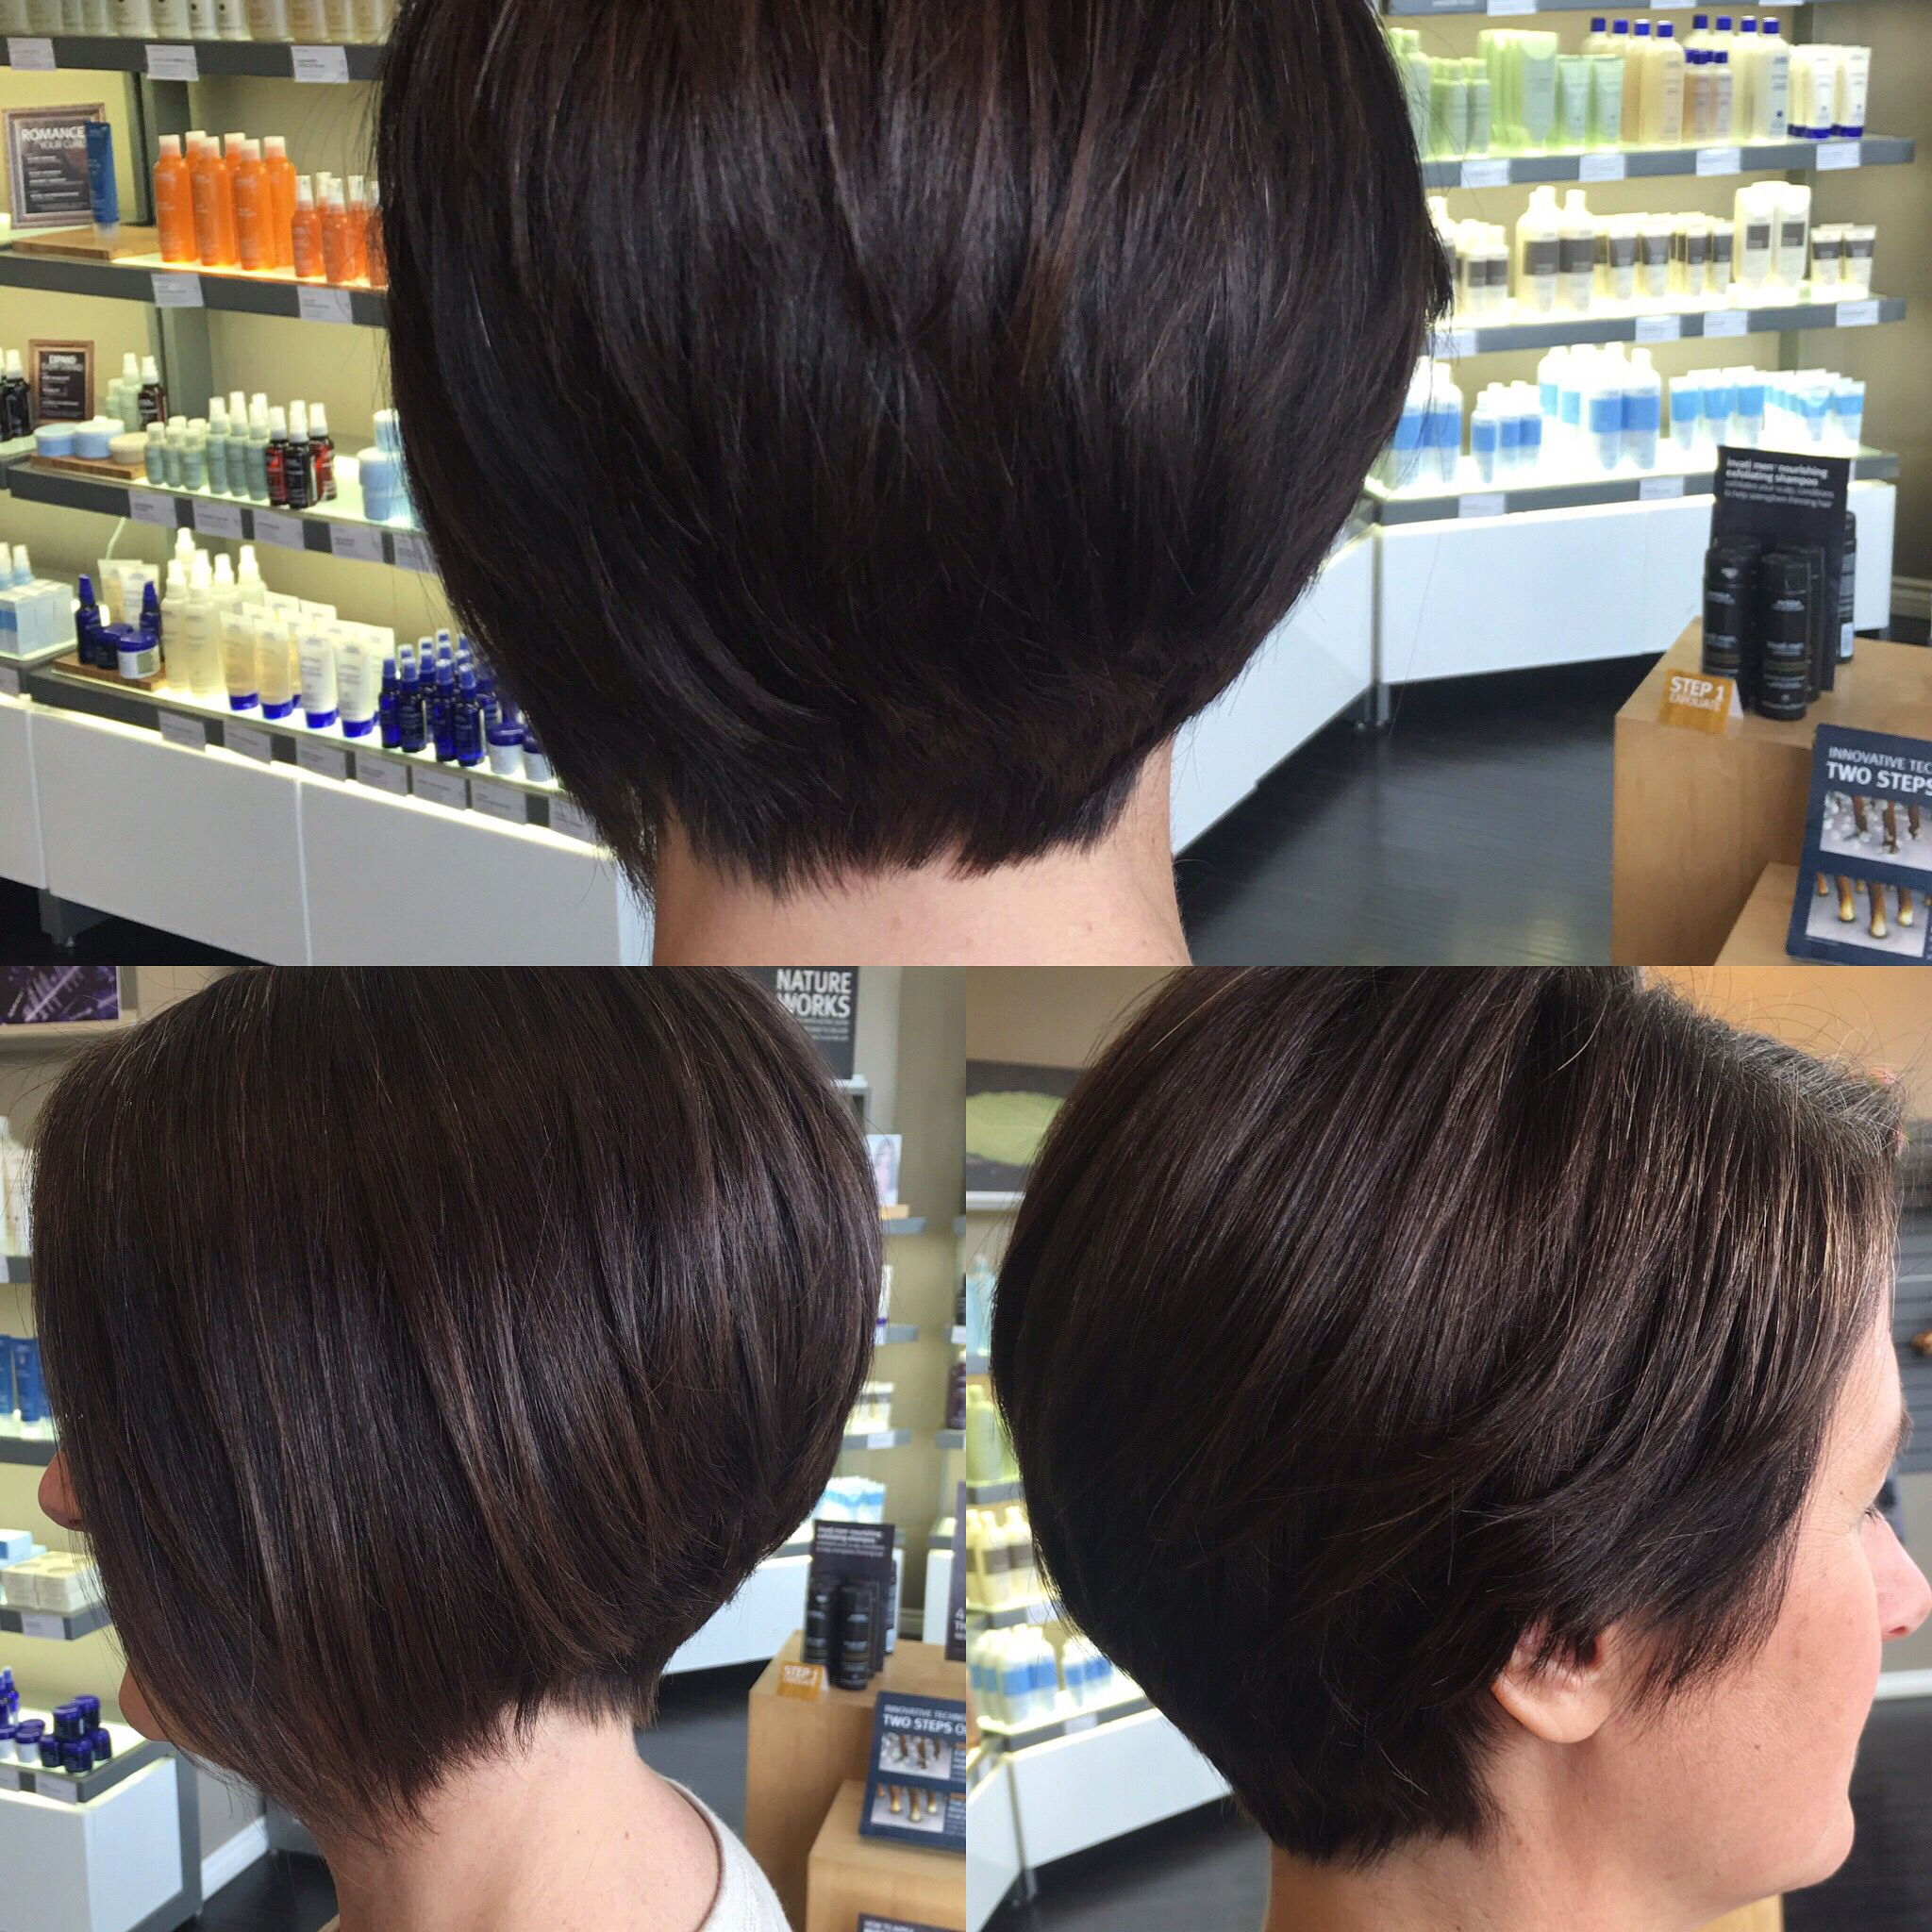 Hair by Kendra Asymmetrical razor cut bob To book an appointment